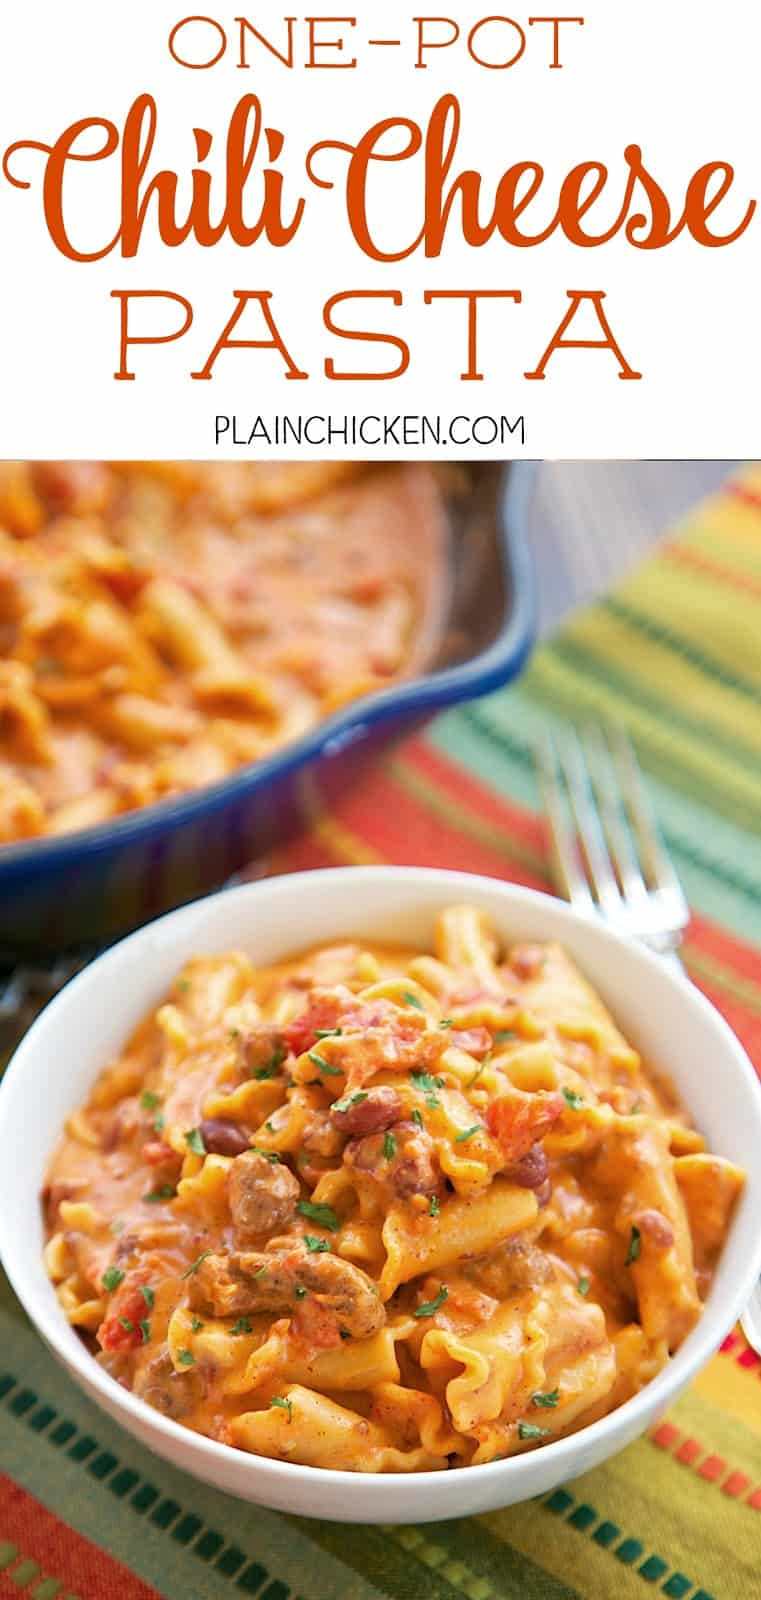 One Pot Chili Cheese Pasta - everything cooks in the same skillet, even the pasta!! Canned chili, cream cheese, diced tomatoes, chicken broth, pasta, garlic, chili powder and cheddar cheese. Everyone cleaned their plate! So quick and easy to make. Ready in under 20 minutes!